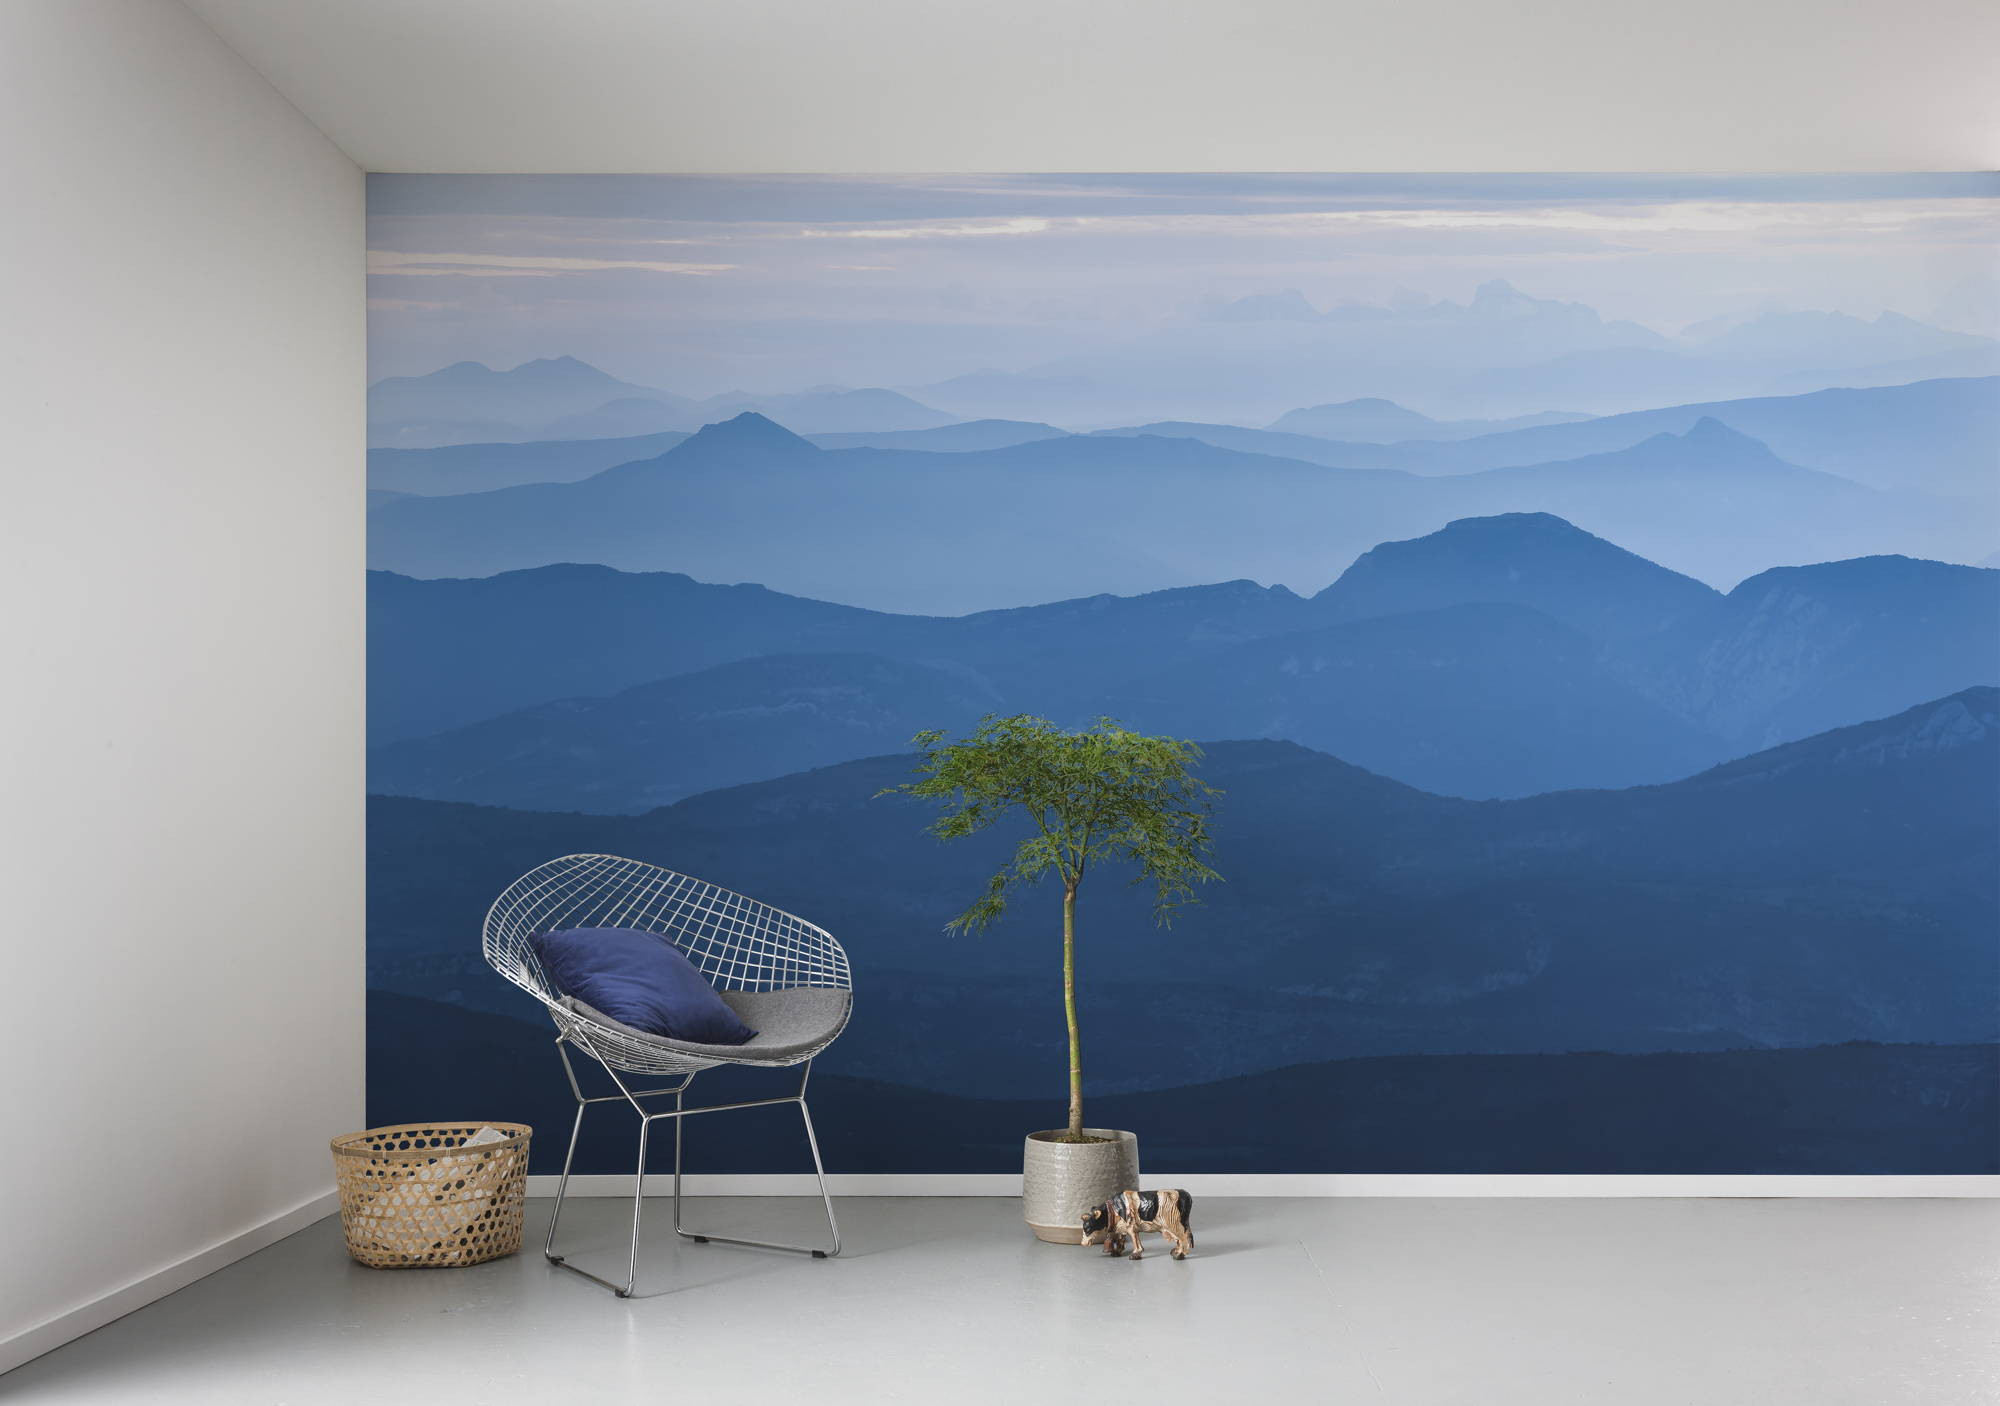 Most Inspiring Wallpaper Mountain Bedroom - 6021a-vd4_blue_mountain_interieur_i  You Should Have_397777.jpg